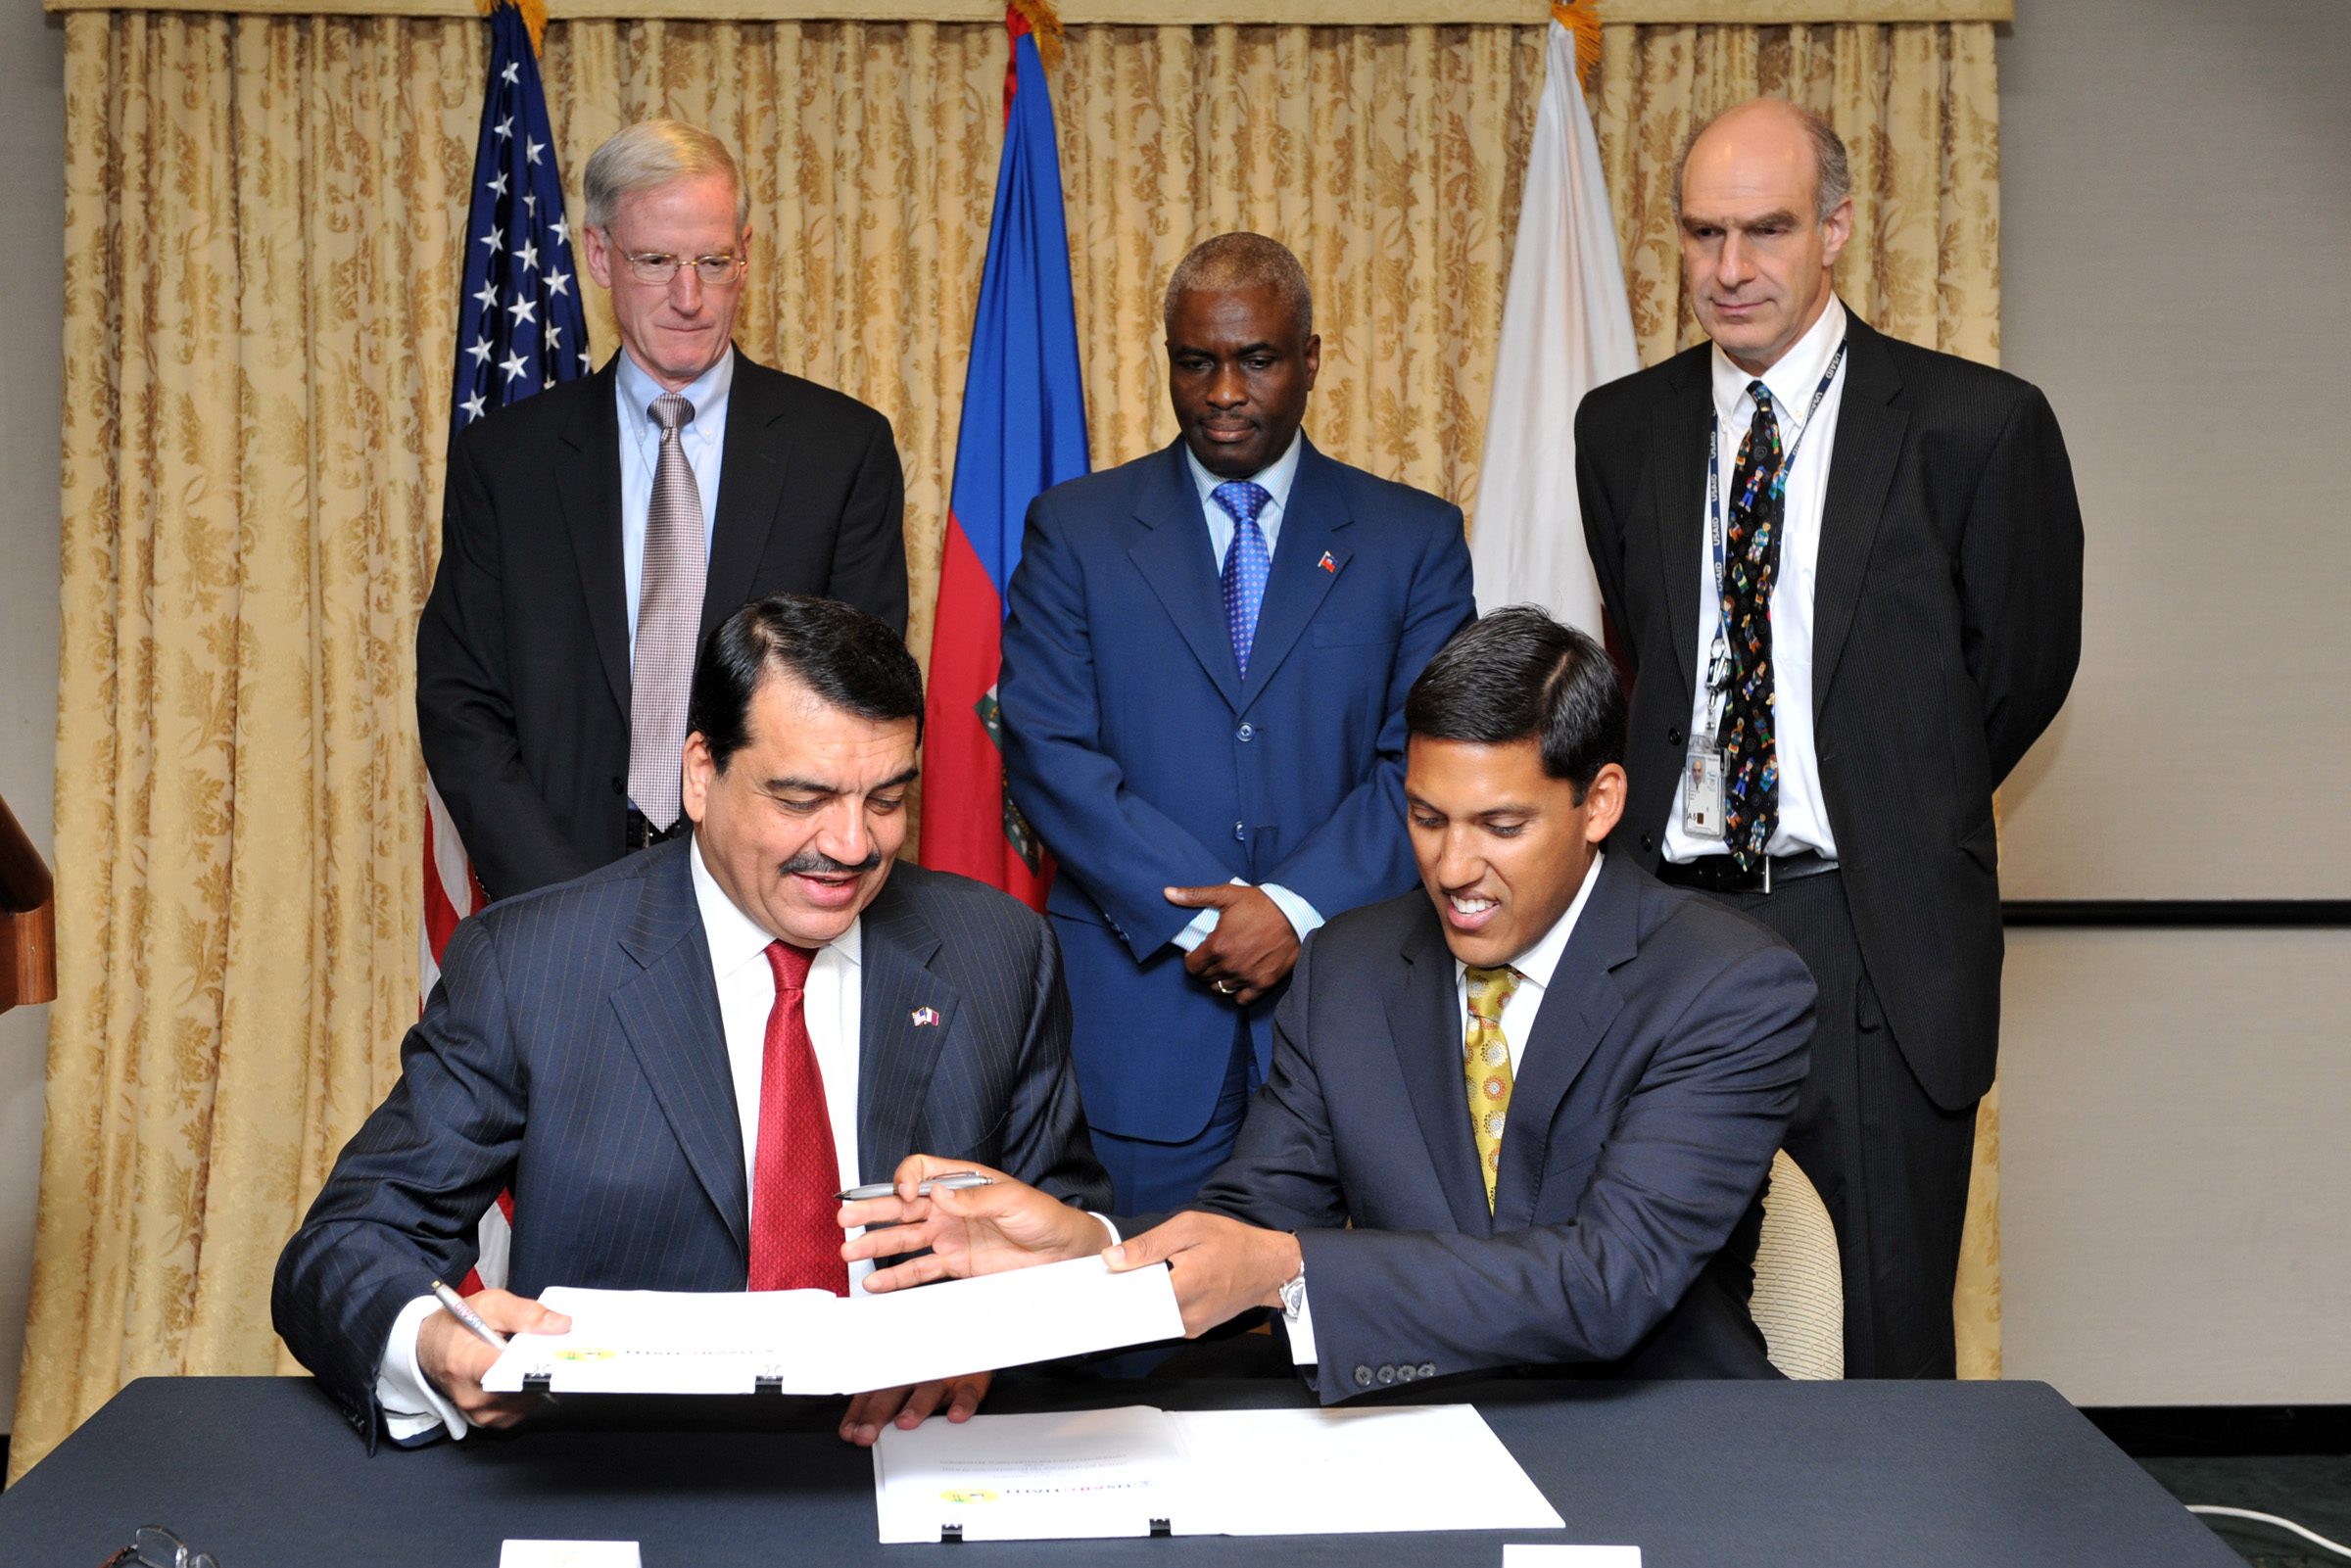 USAID Administrator Rajiv Shah (right) and Mohamed Bin Abdulla Al-Rumaihi, Qatari Ambassador to the United States and chairman f